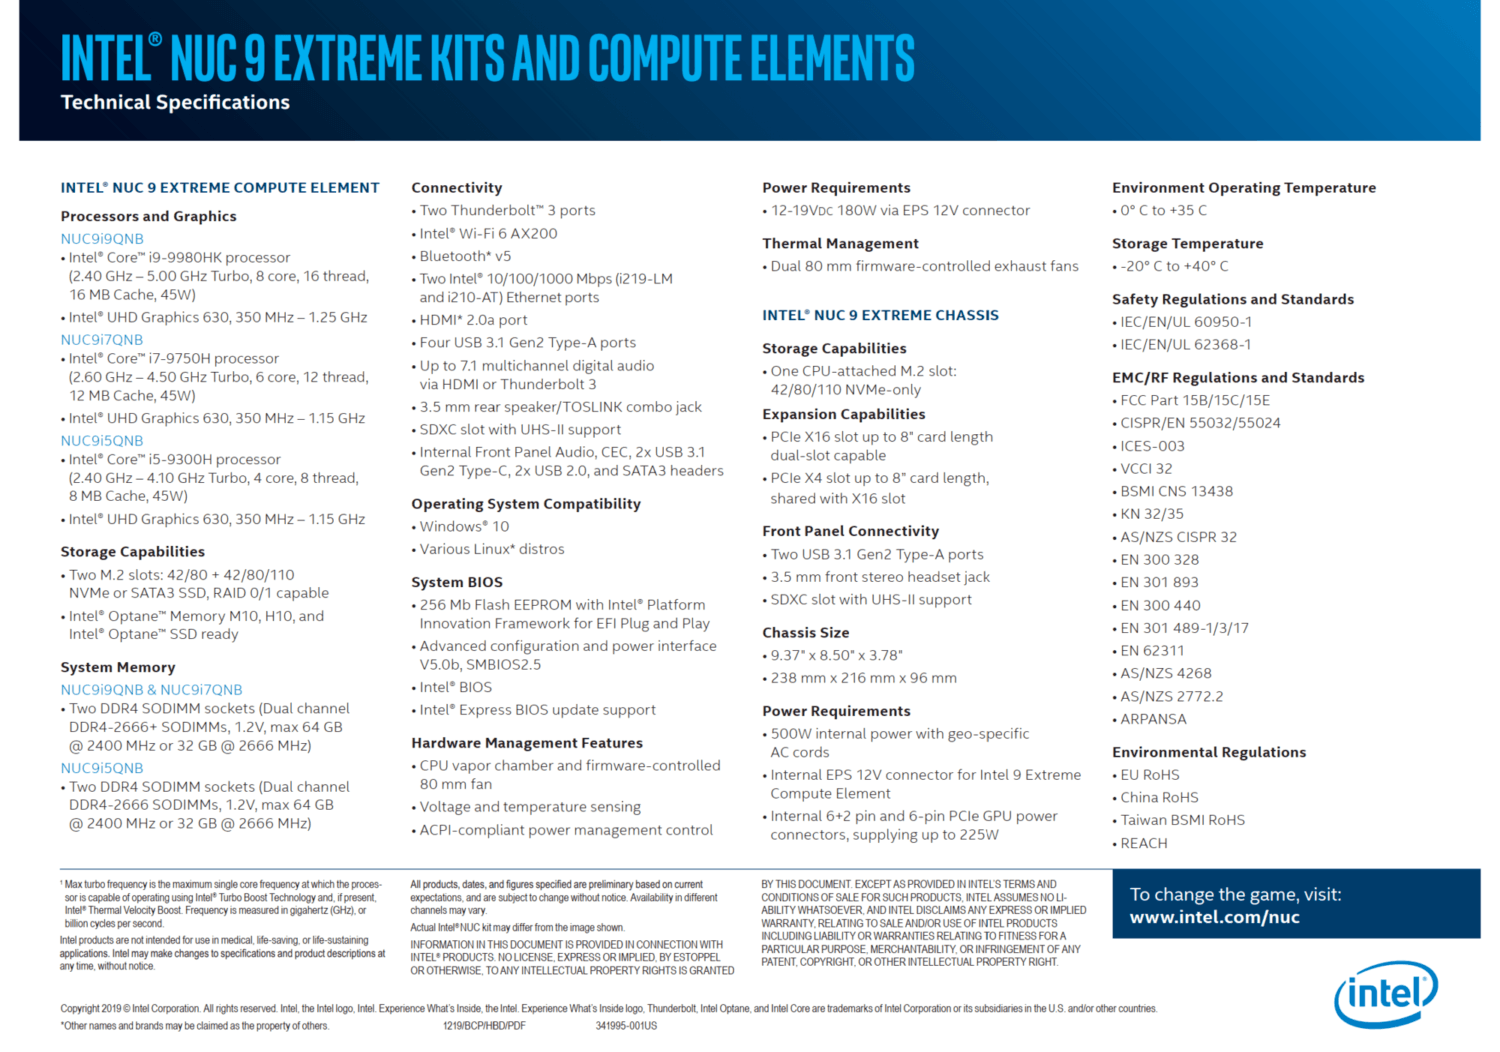 Intel NUC Ghost Canyon - specs list